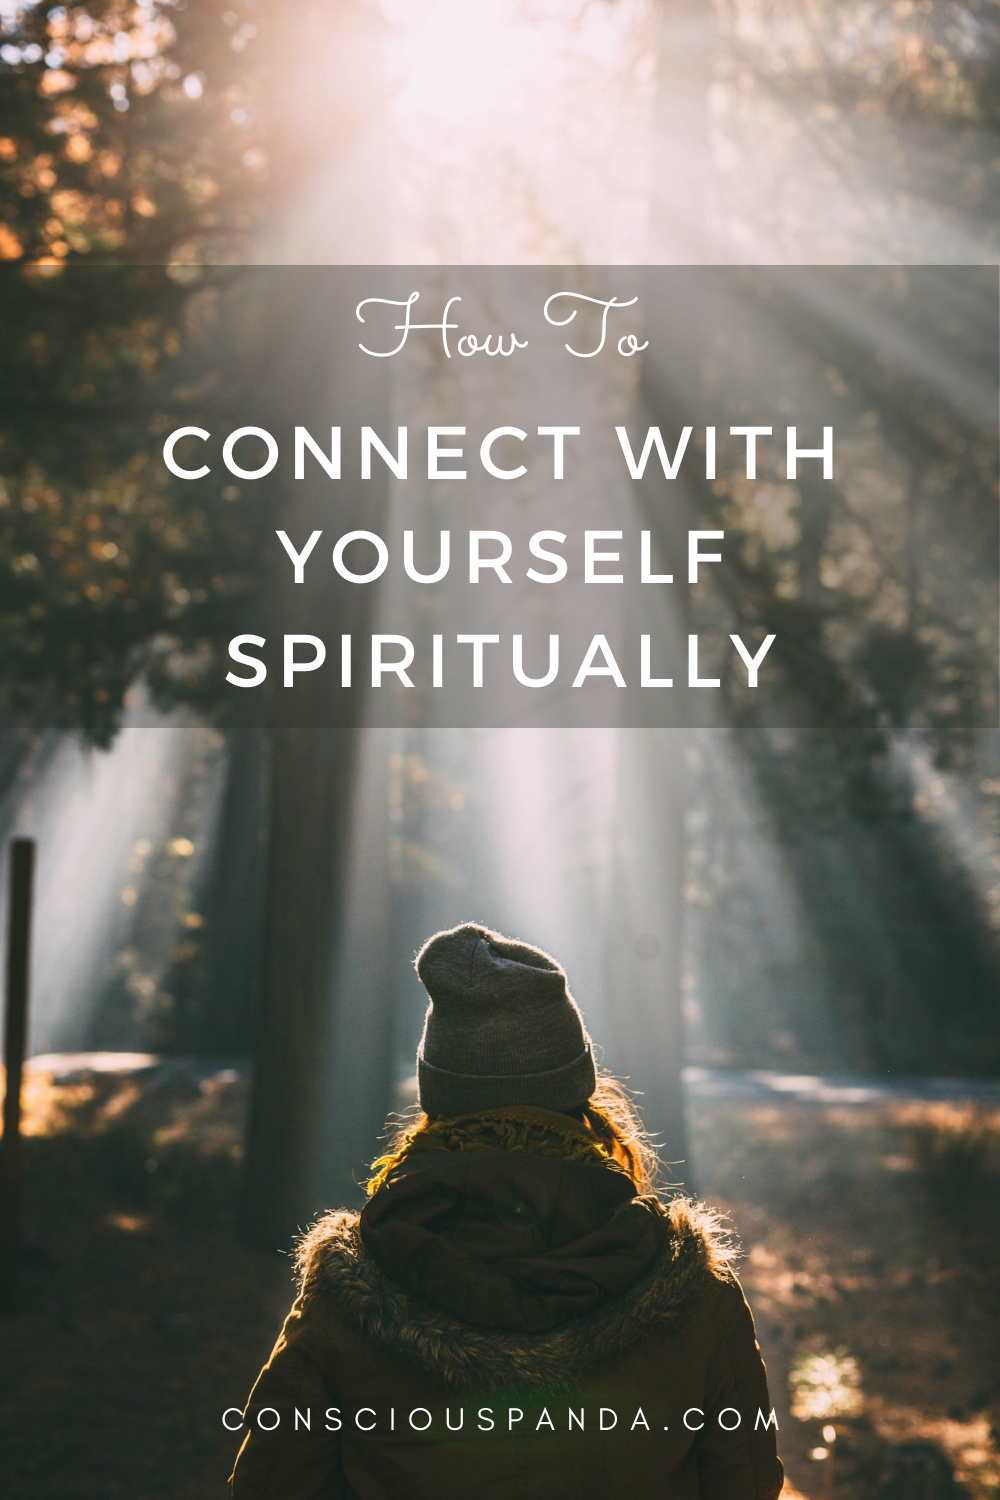 How to Connect With Yourself Spiritually